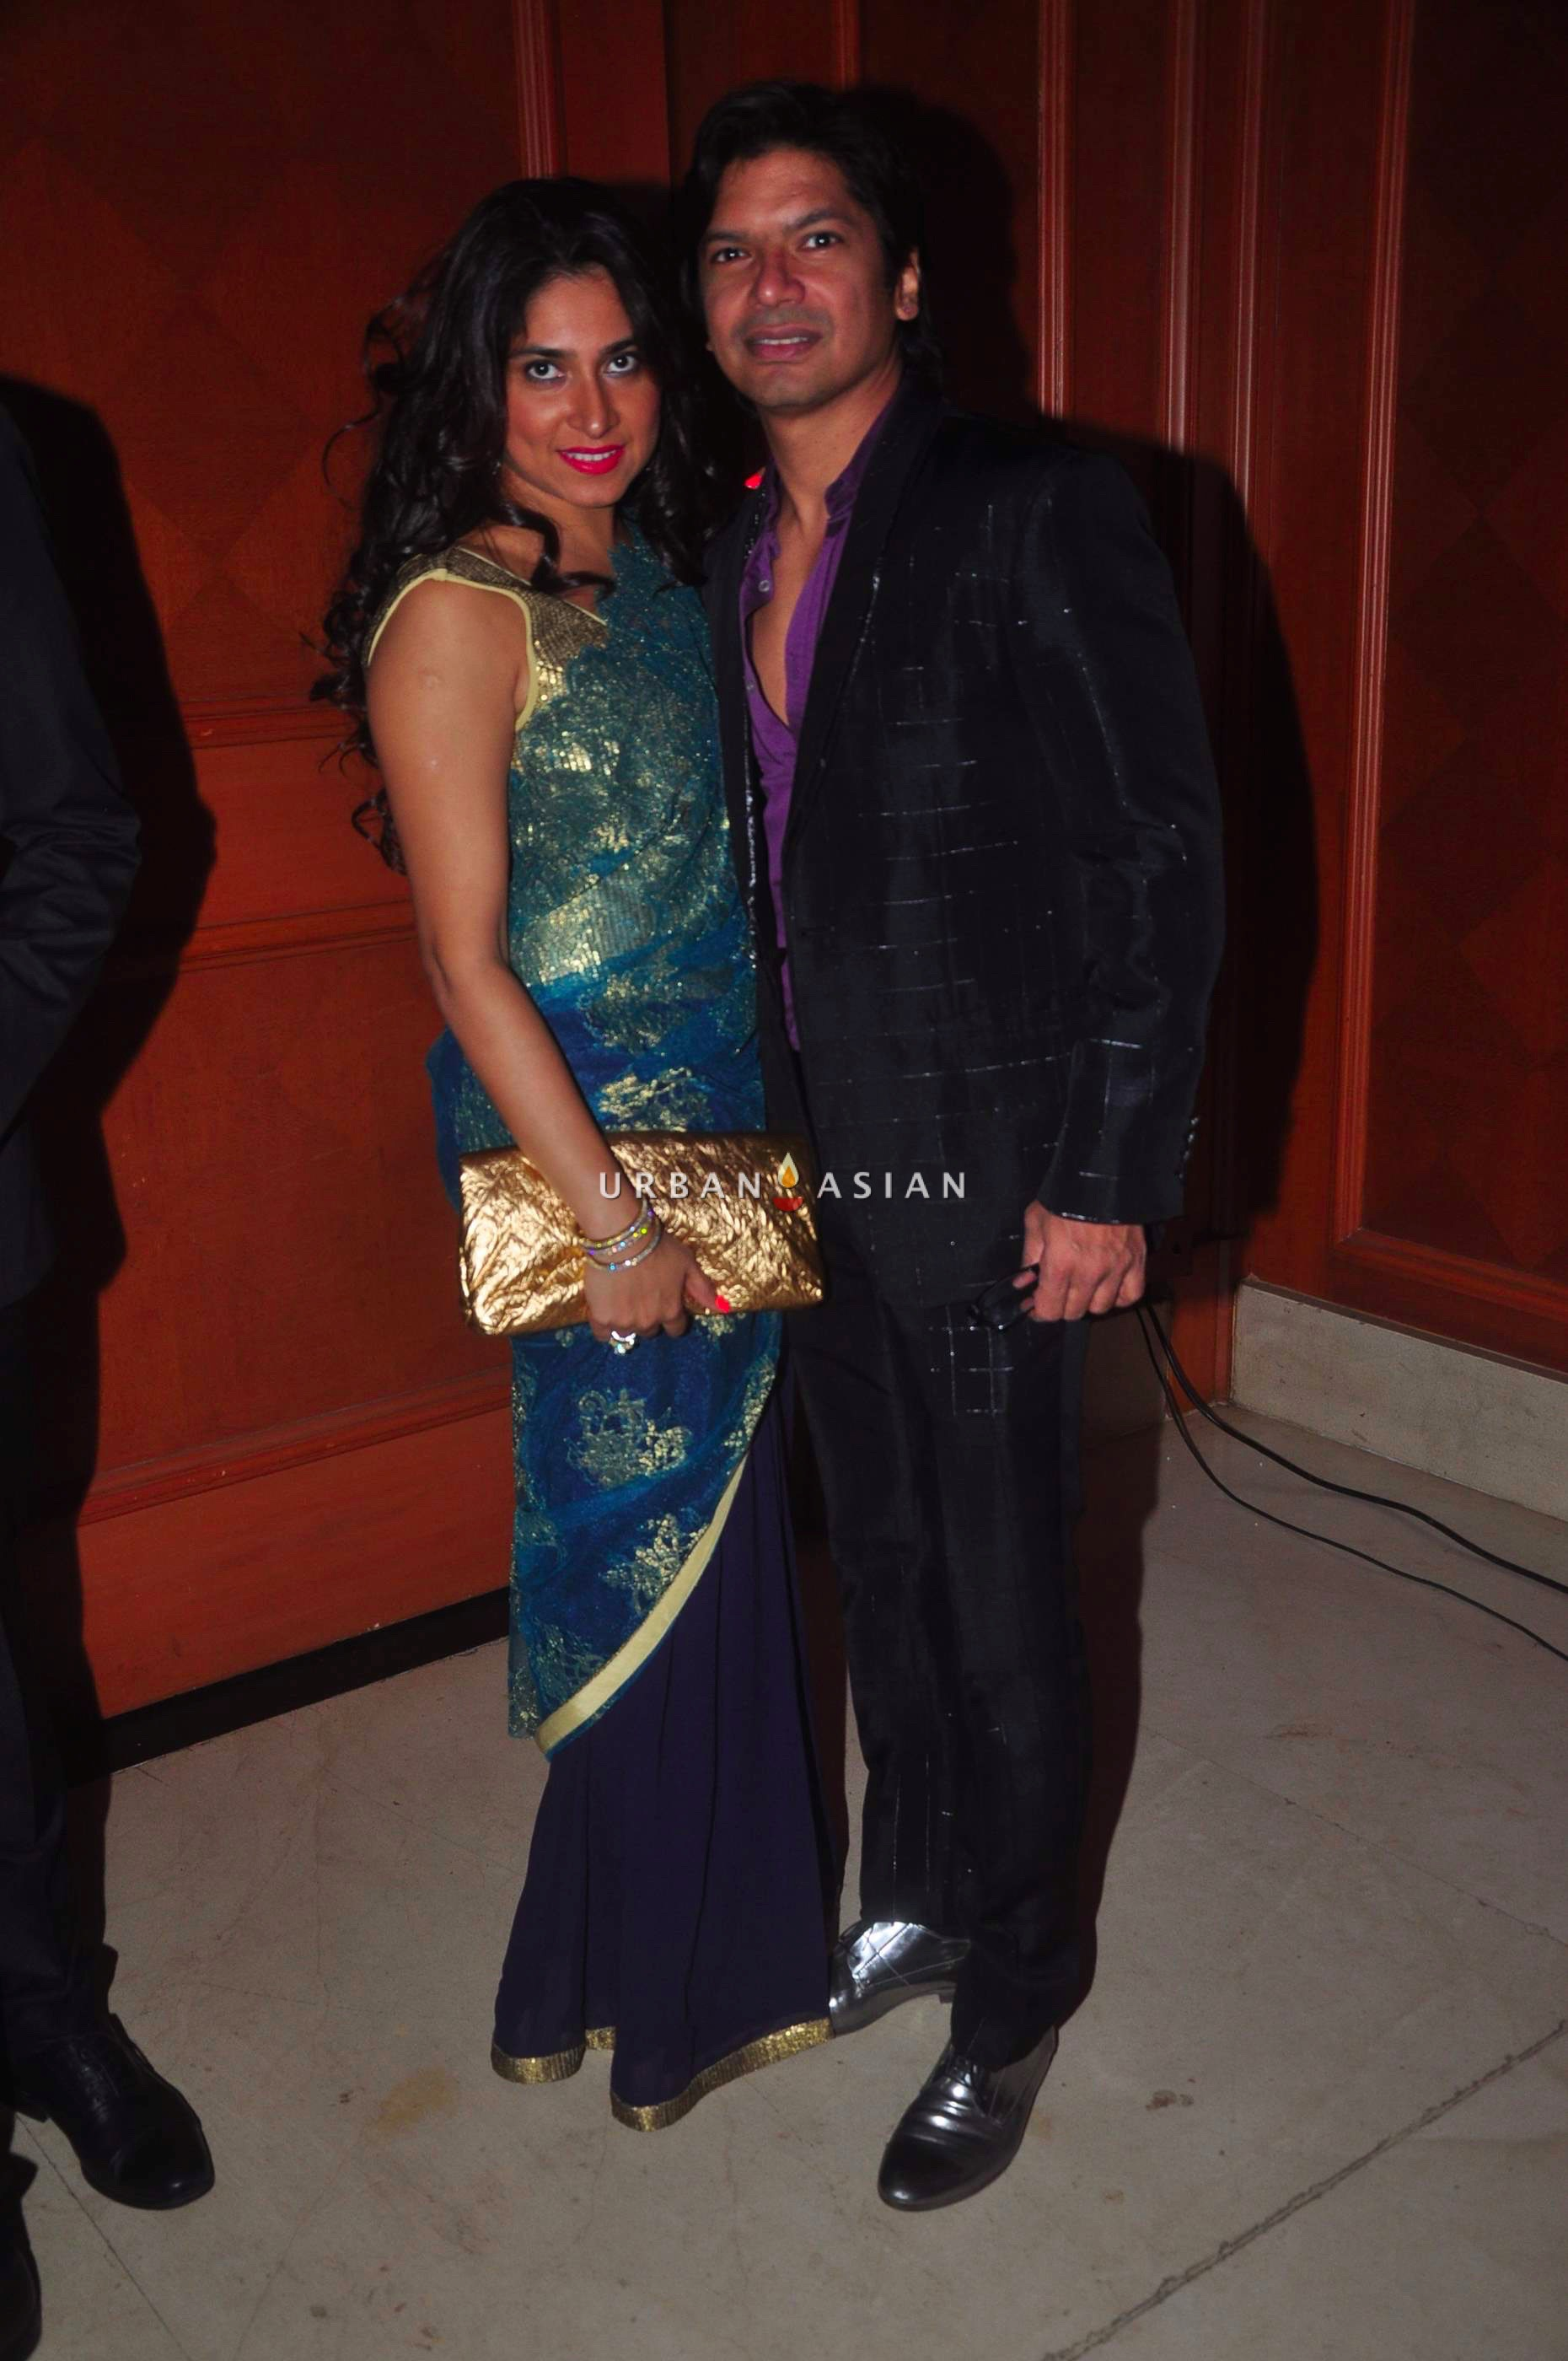 Shan with his wife